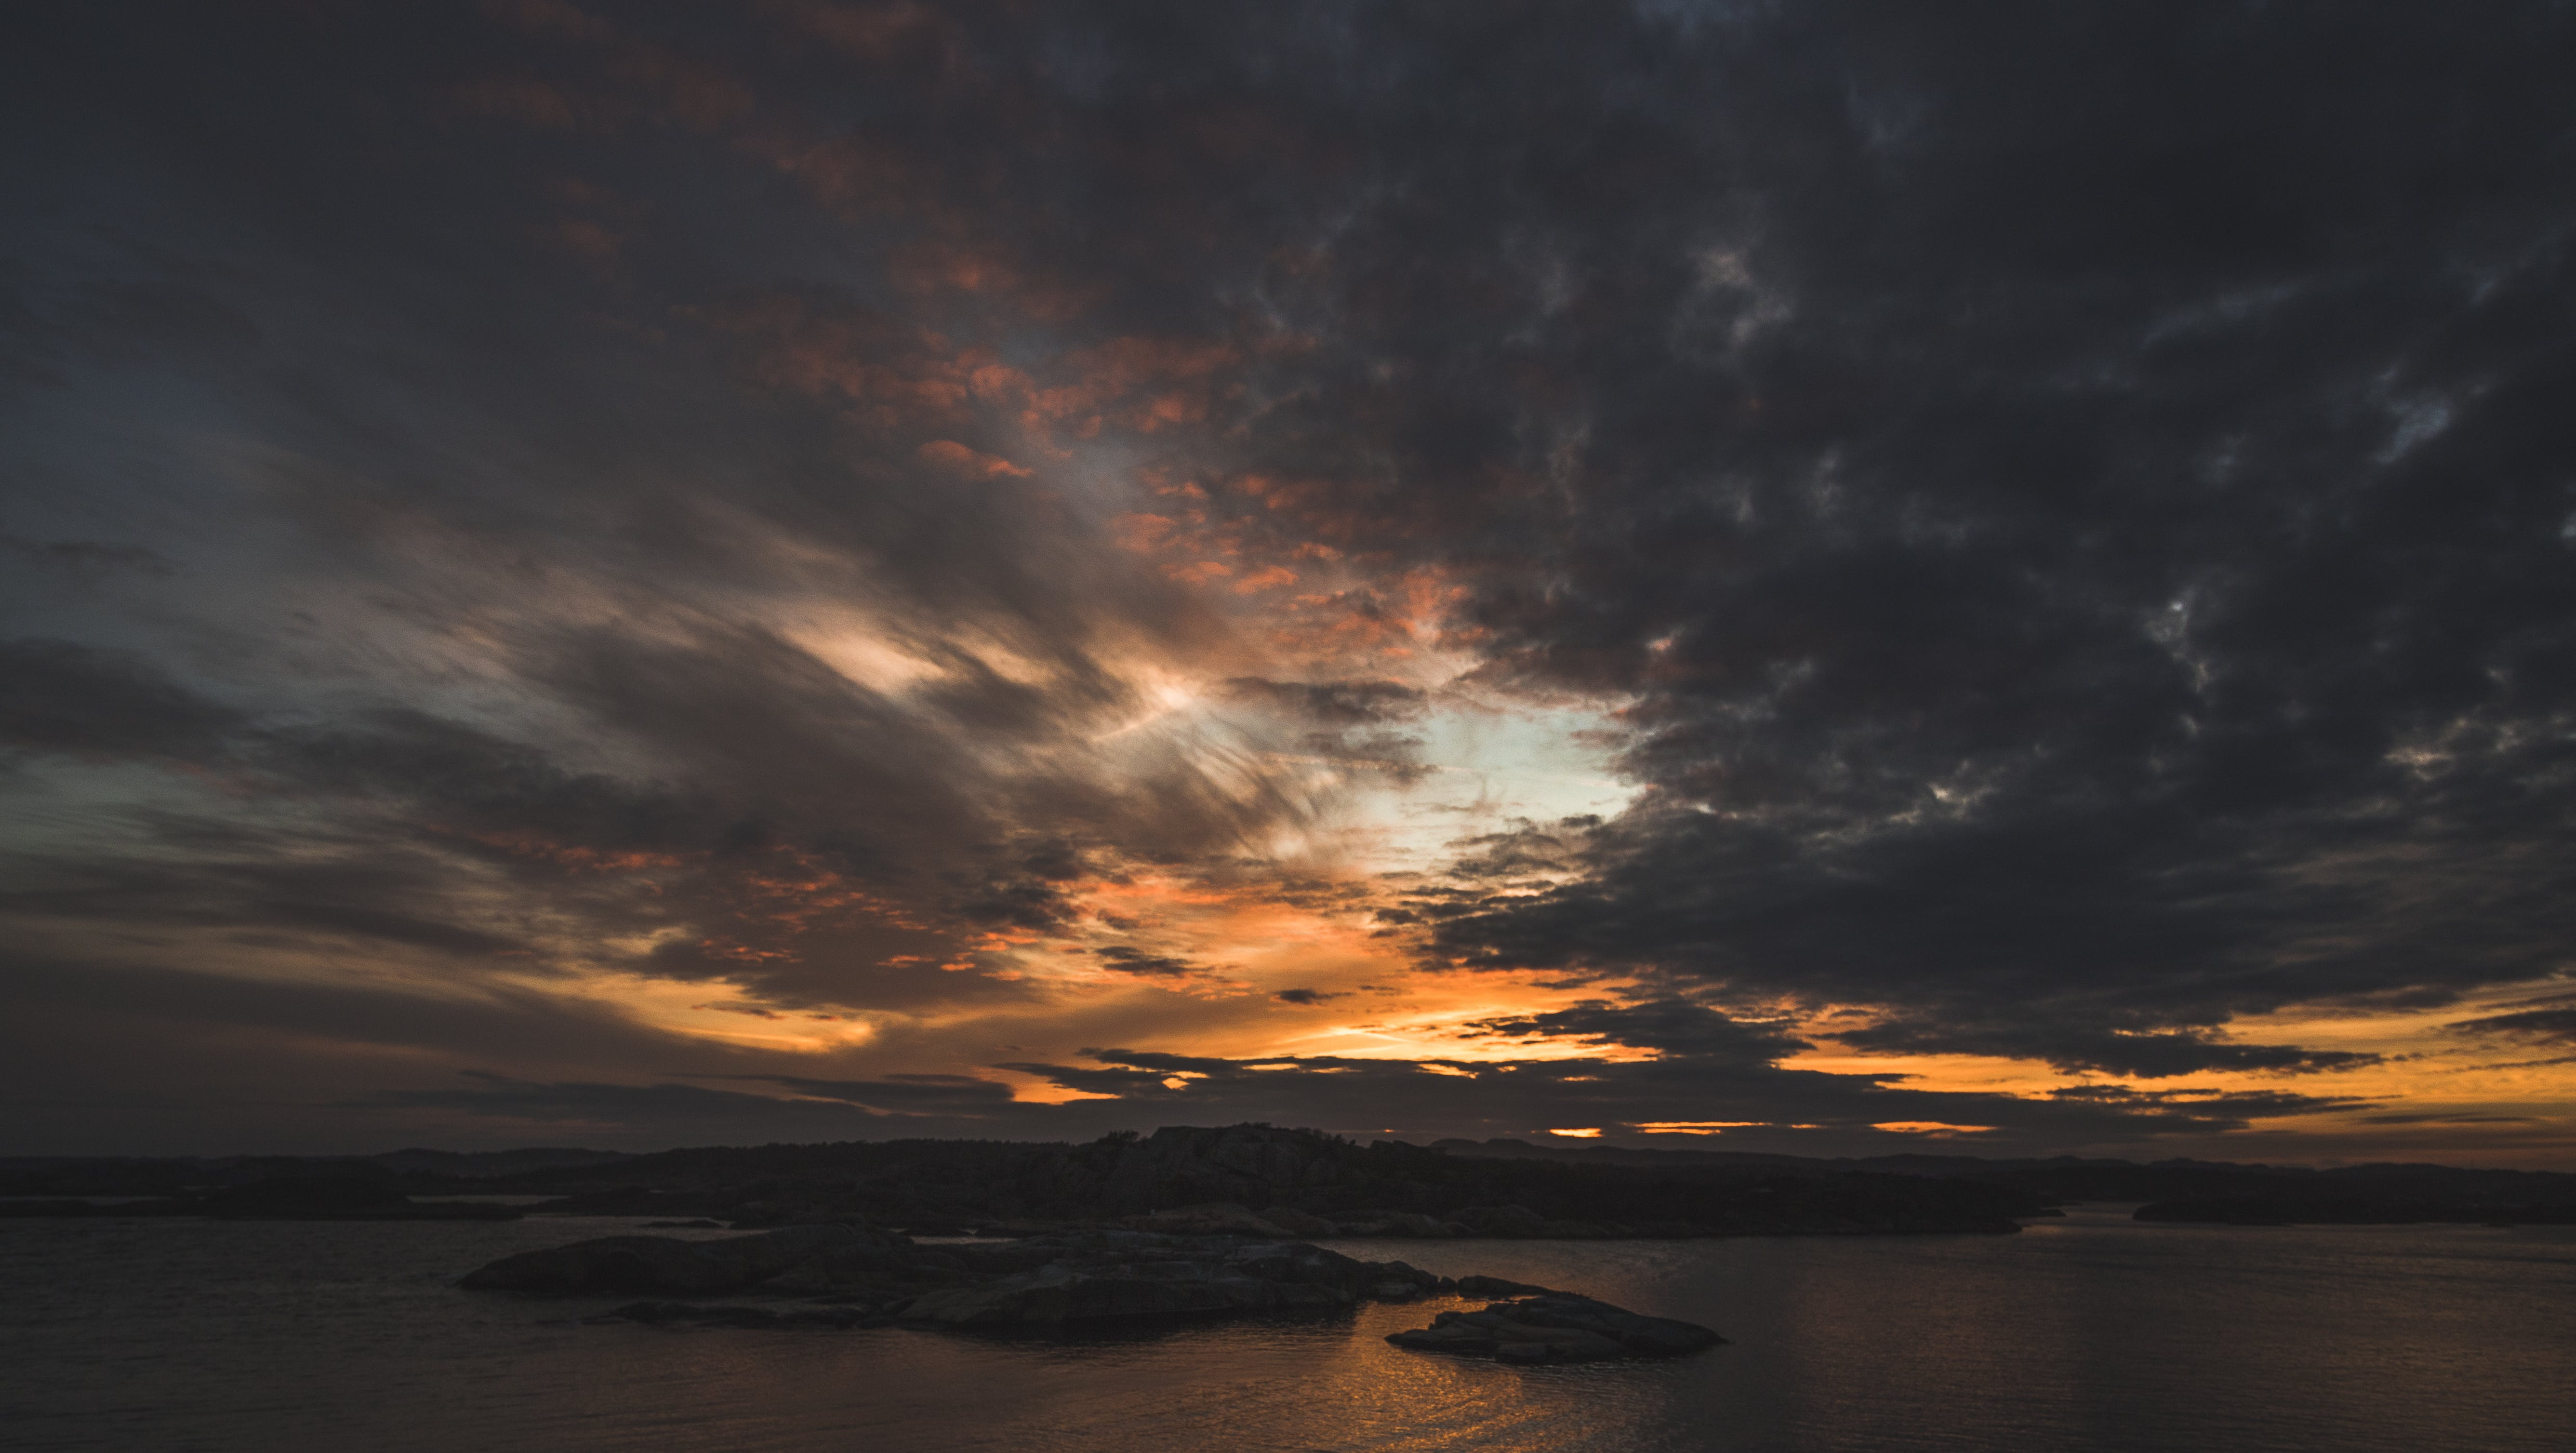 Silhouette of Island Under Grey Clouds during Golden Hour